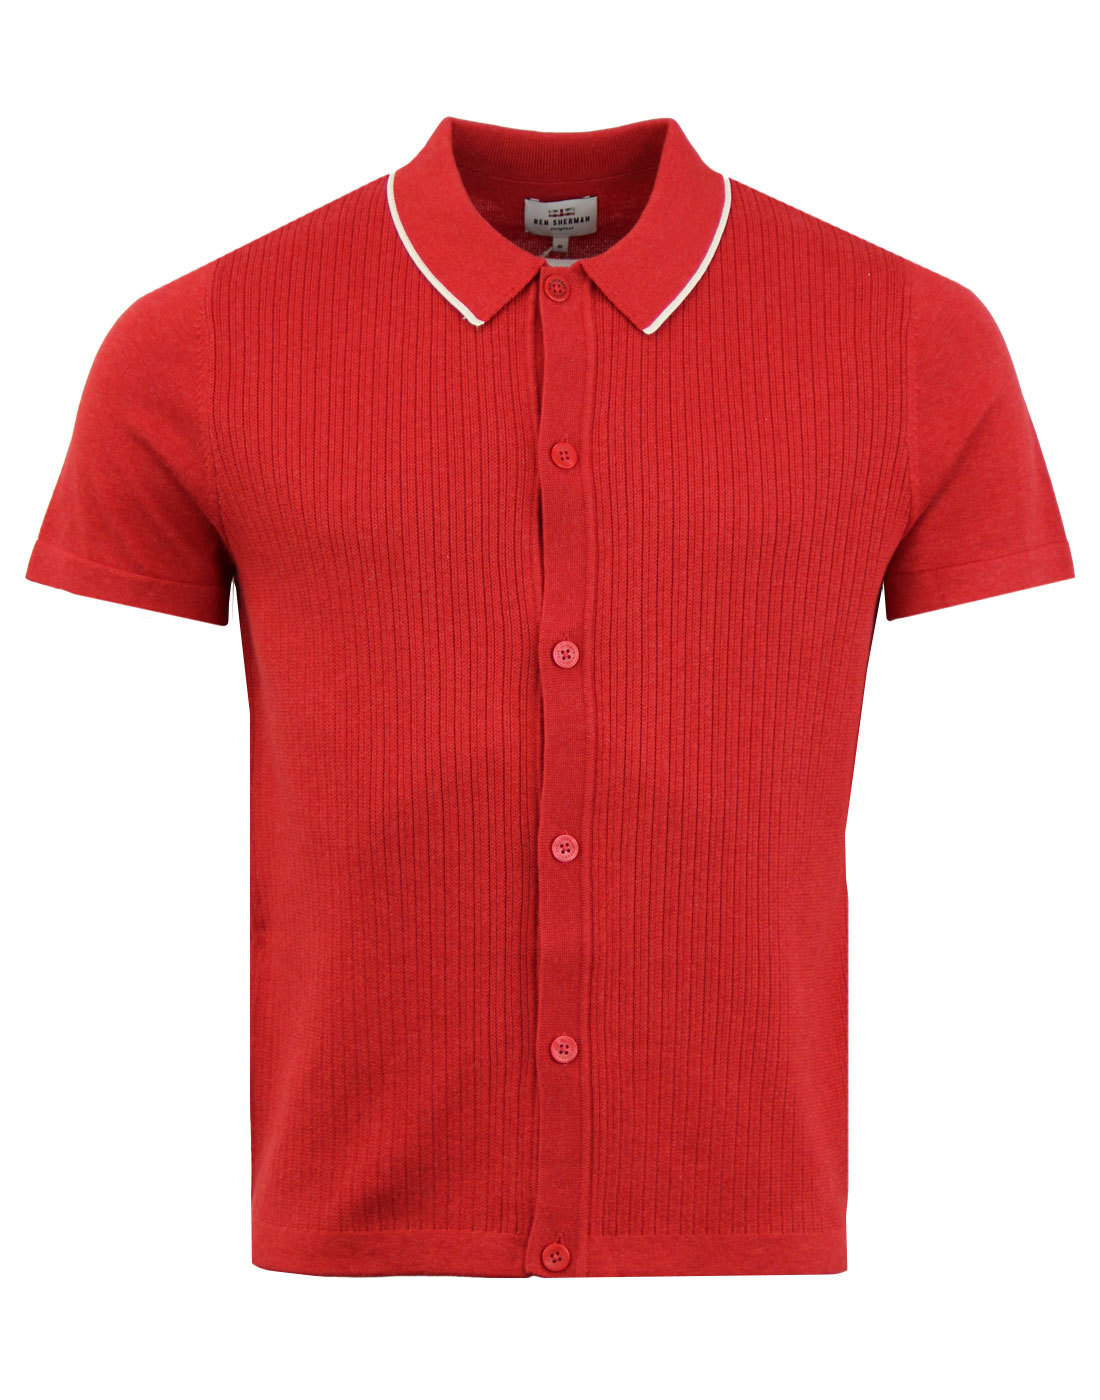 BEN SHERMAN 60s Mod Ribbed Knit SS Polo Cardigan